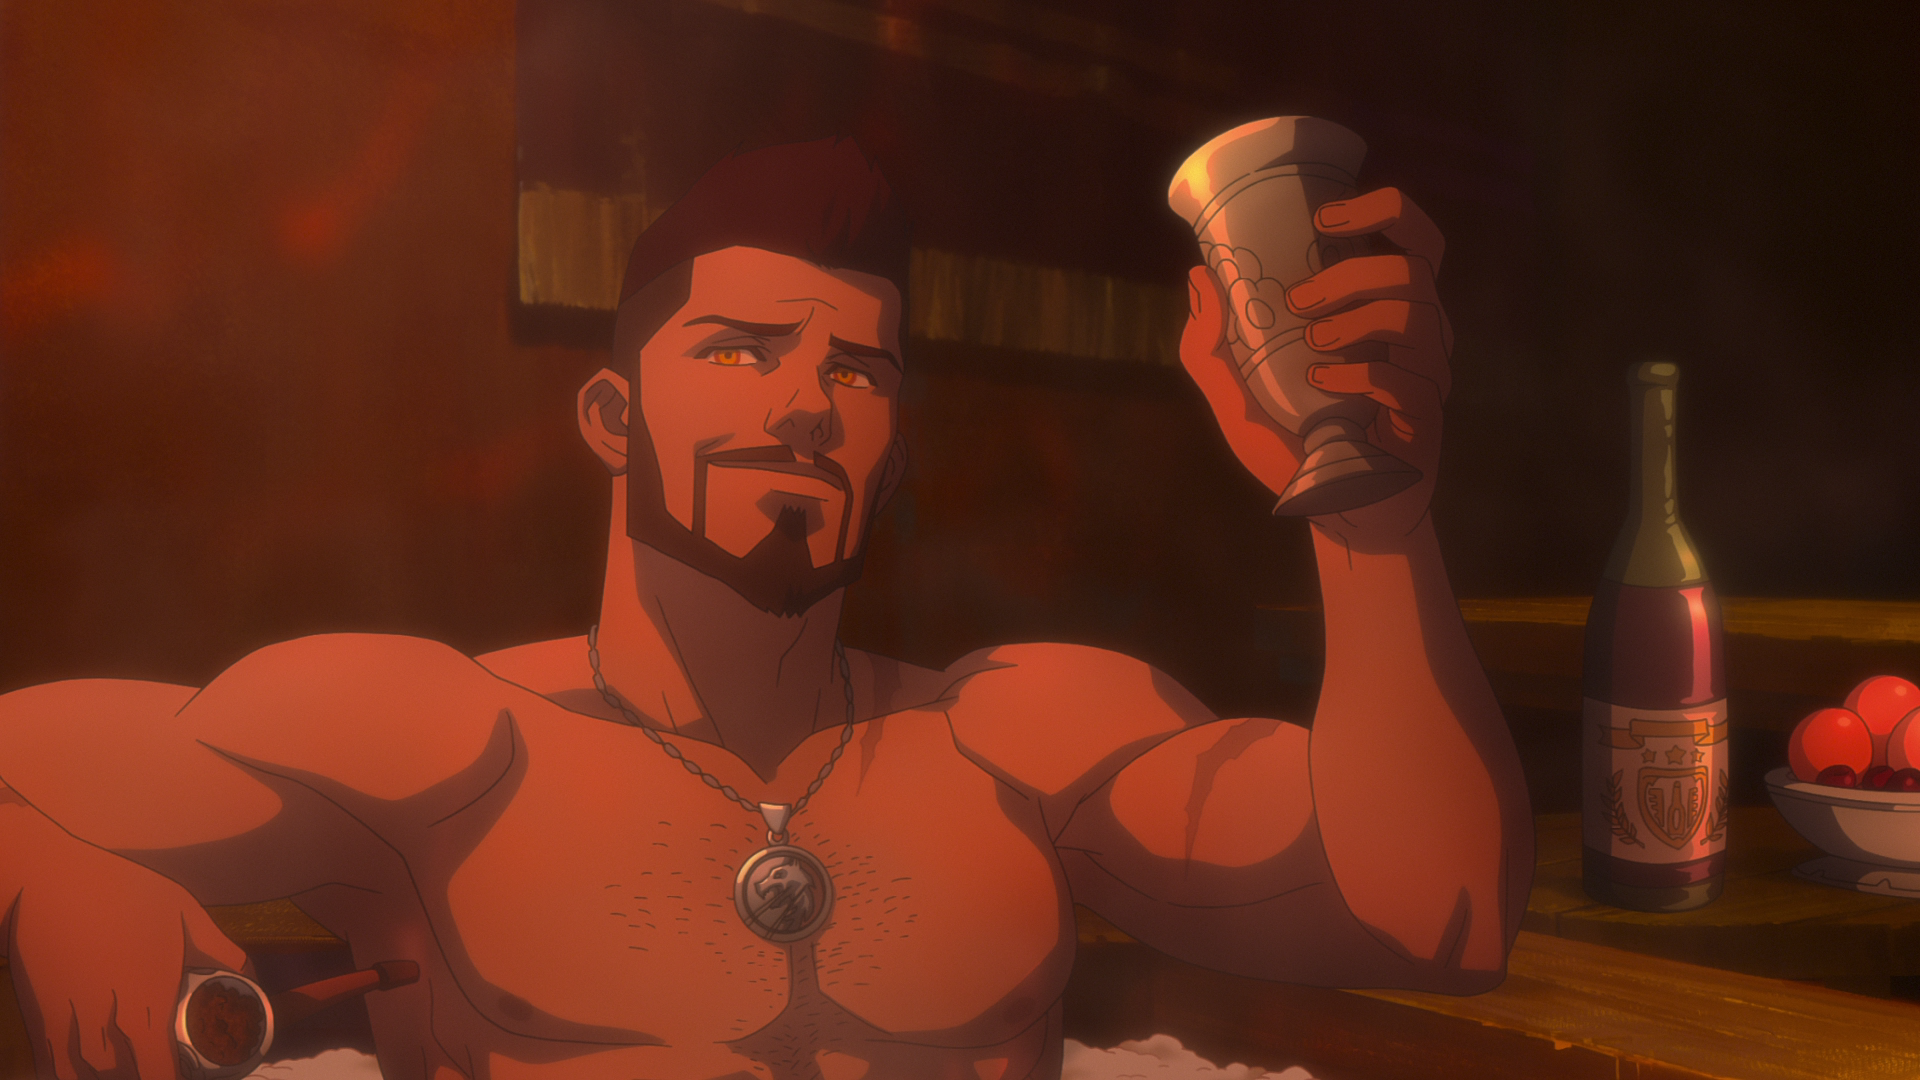 Vesemir in the bath from Netflix's The Witcher: Nightmare of the Wolf anime movie